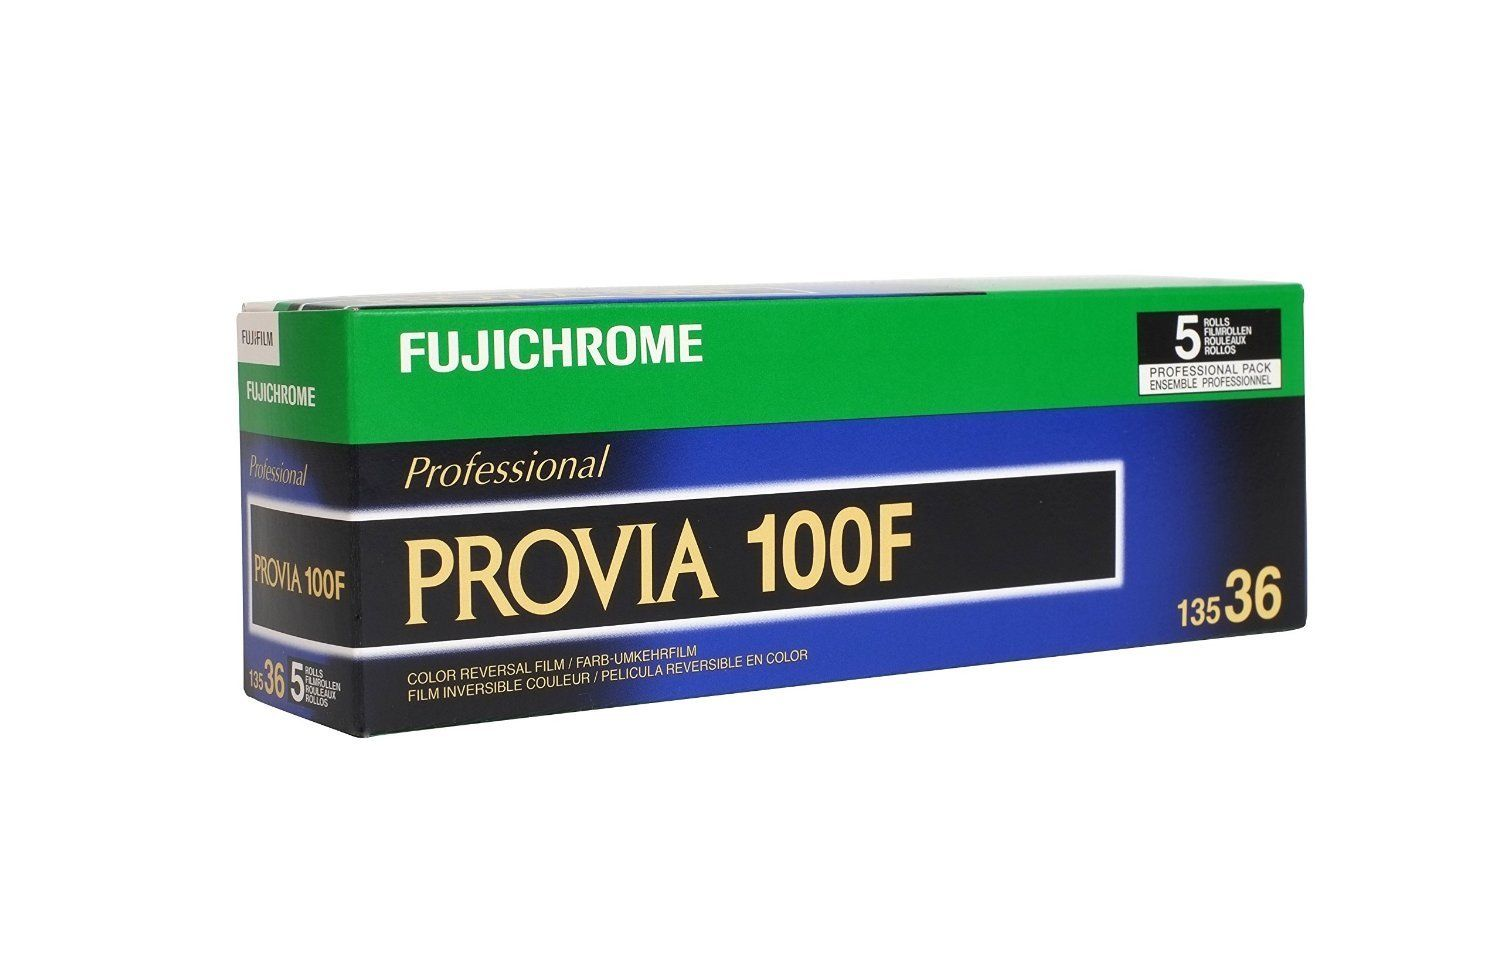 20 Rolls Fuji FujiChrome Provia RDP 100F 135-36 Color Slide Film 4 2018 by Fujifilm